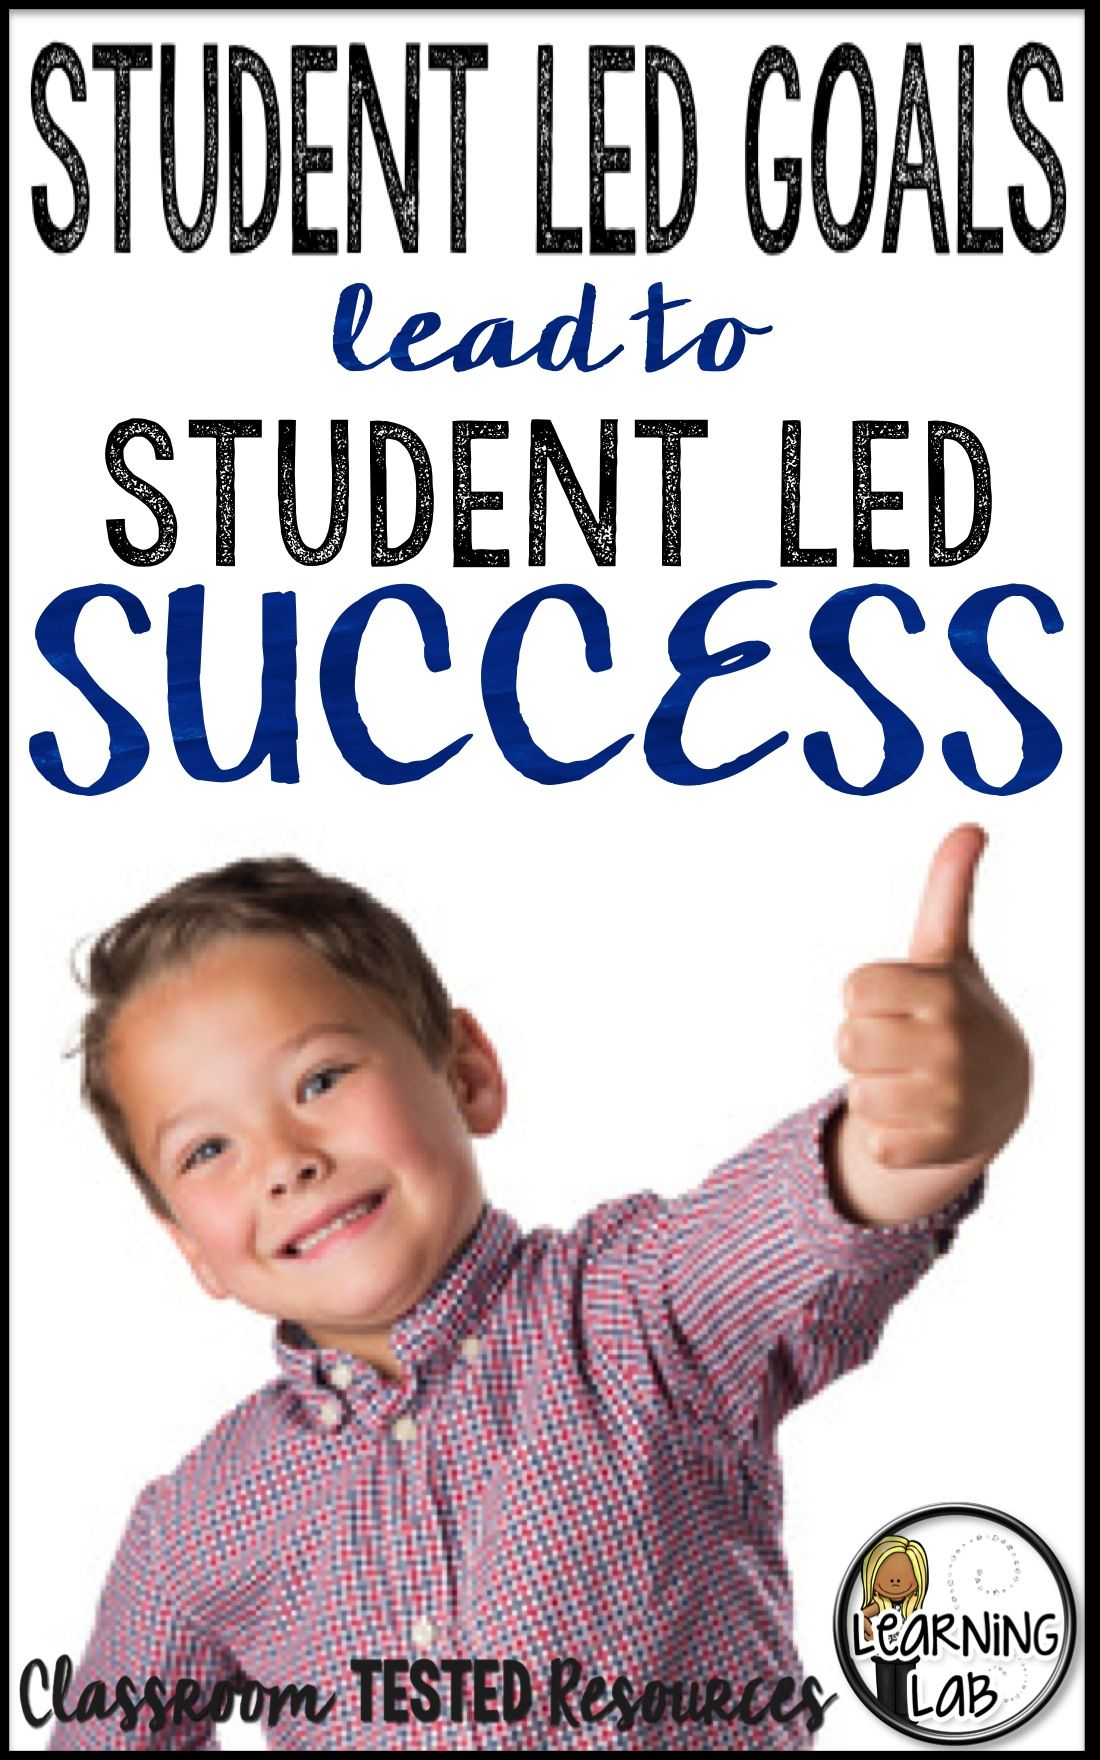 Student Led Goals Lead To Student Led Success